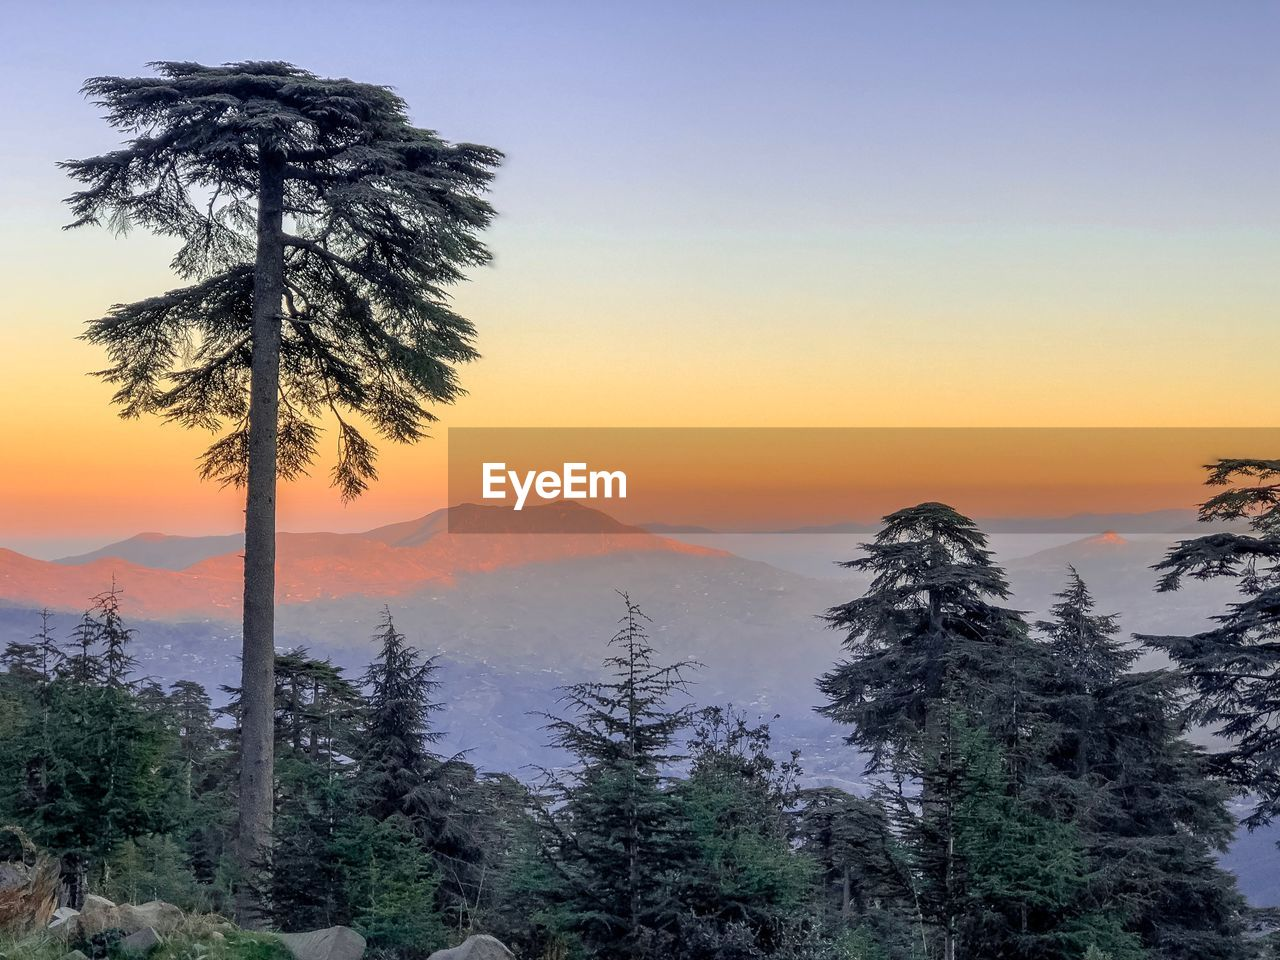 tree, sunset, beauty in nature, sky, scenics - nature, tranquility, tranquil scene, plant, orange color, non-urban scene, mountain, growth, no people, nature, idyllic, outdoors, palm tree, land, silhouette, landscape, coniferous tree